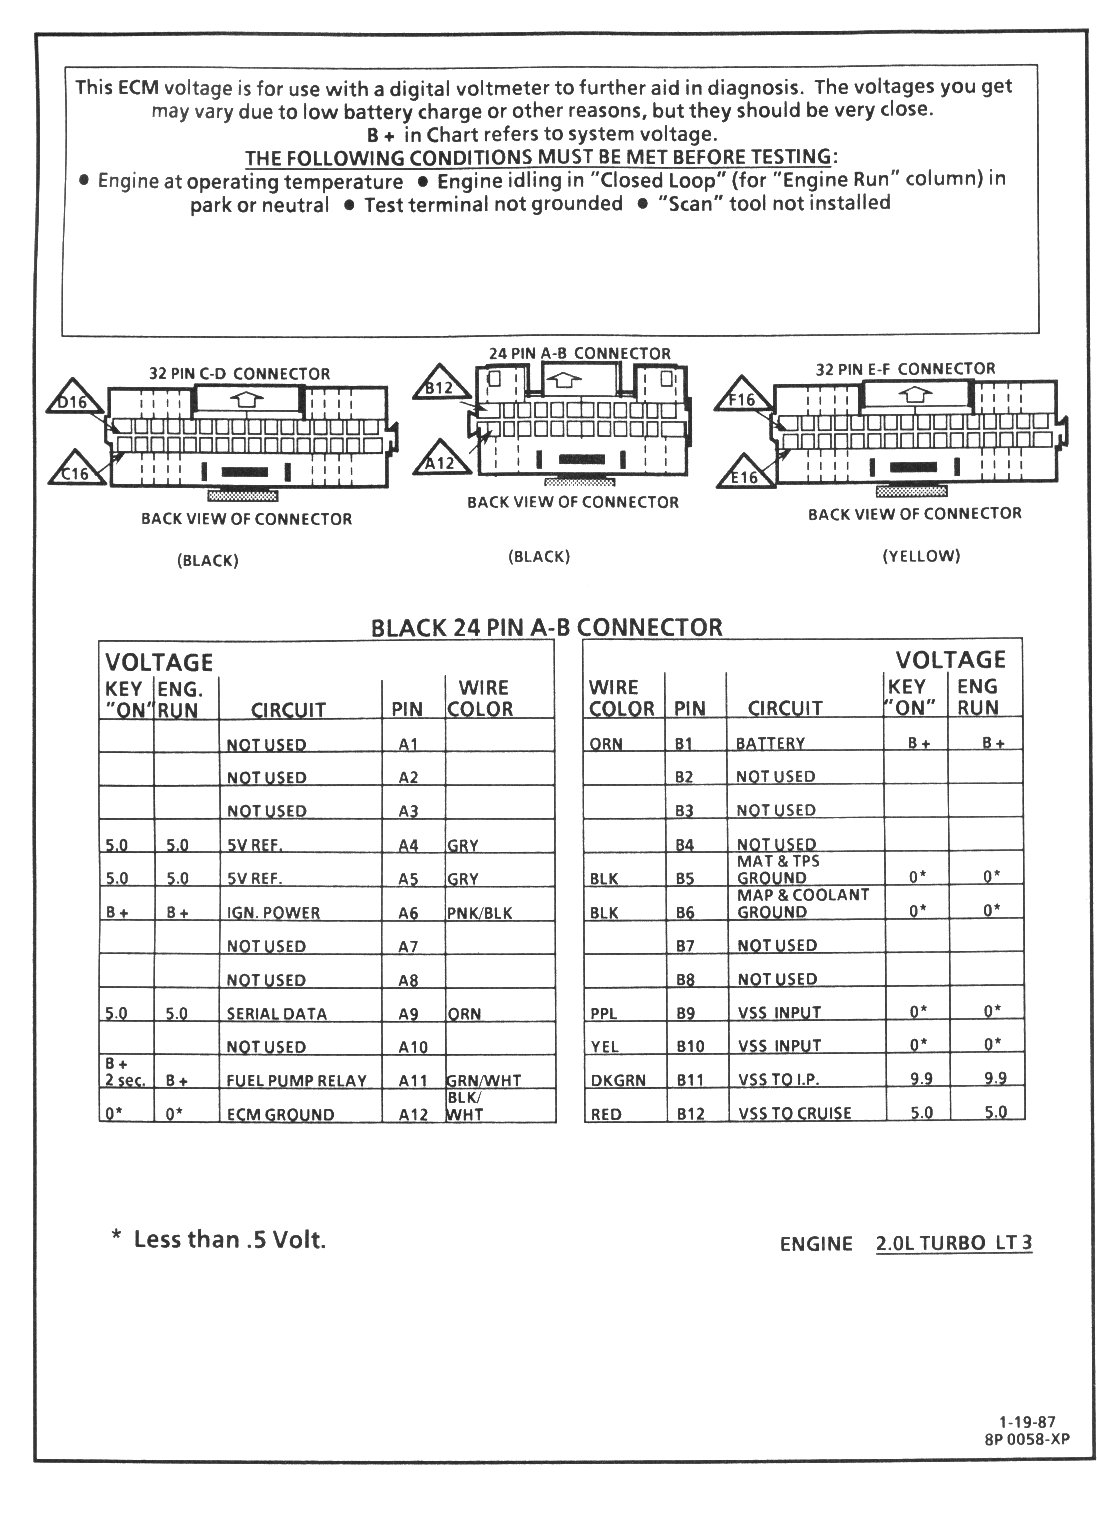 749sunbird5?resize\\d665%2C924 detroit series 60 ecm wiring diagram efcaviation com ddec ii wiring diagram at creativeand.co